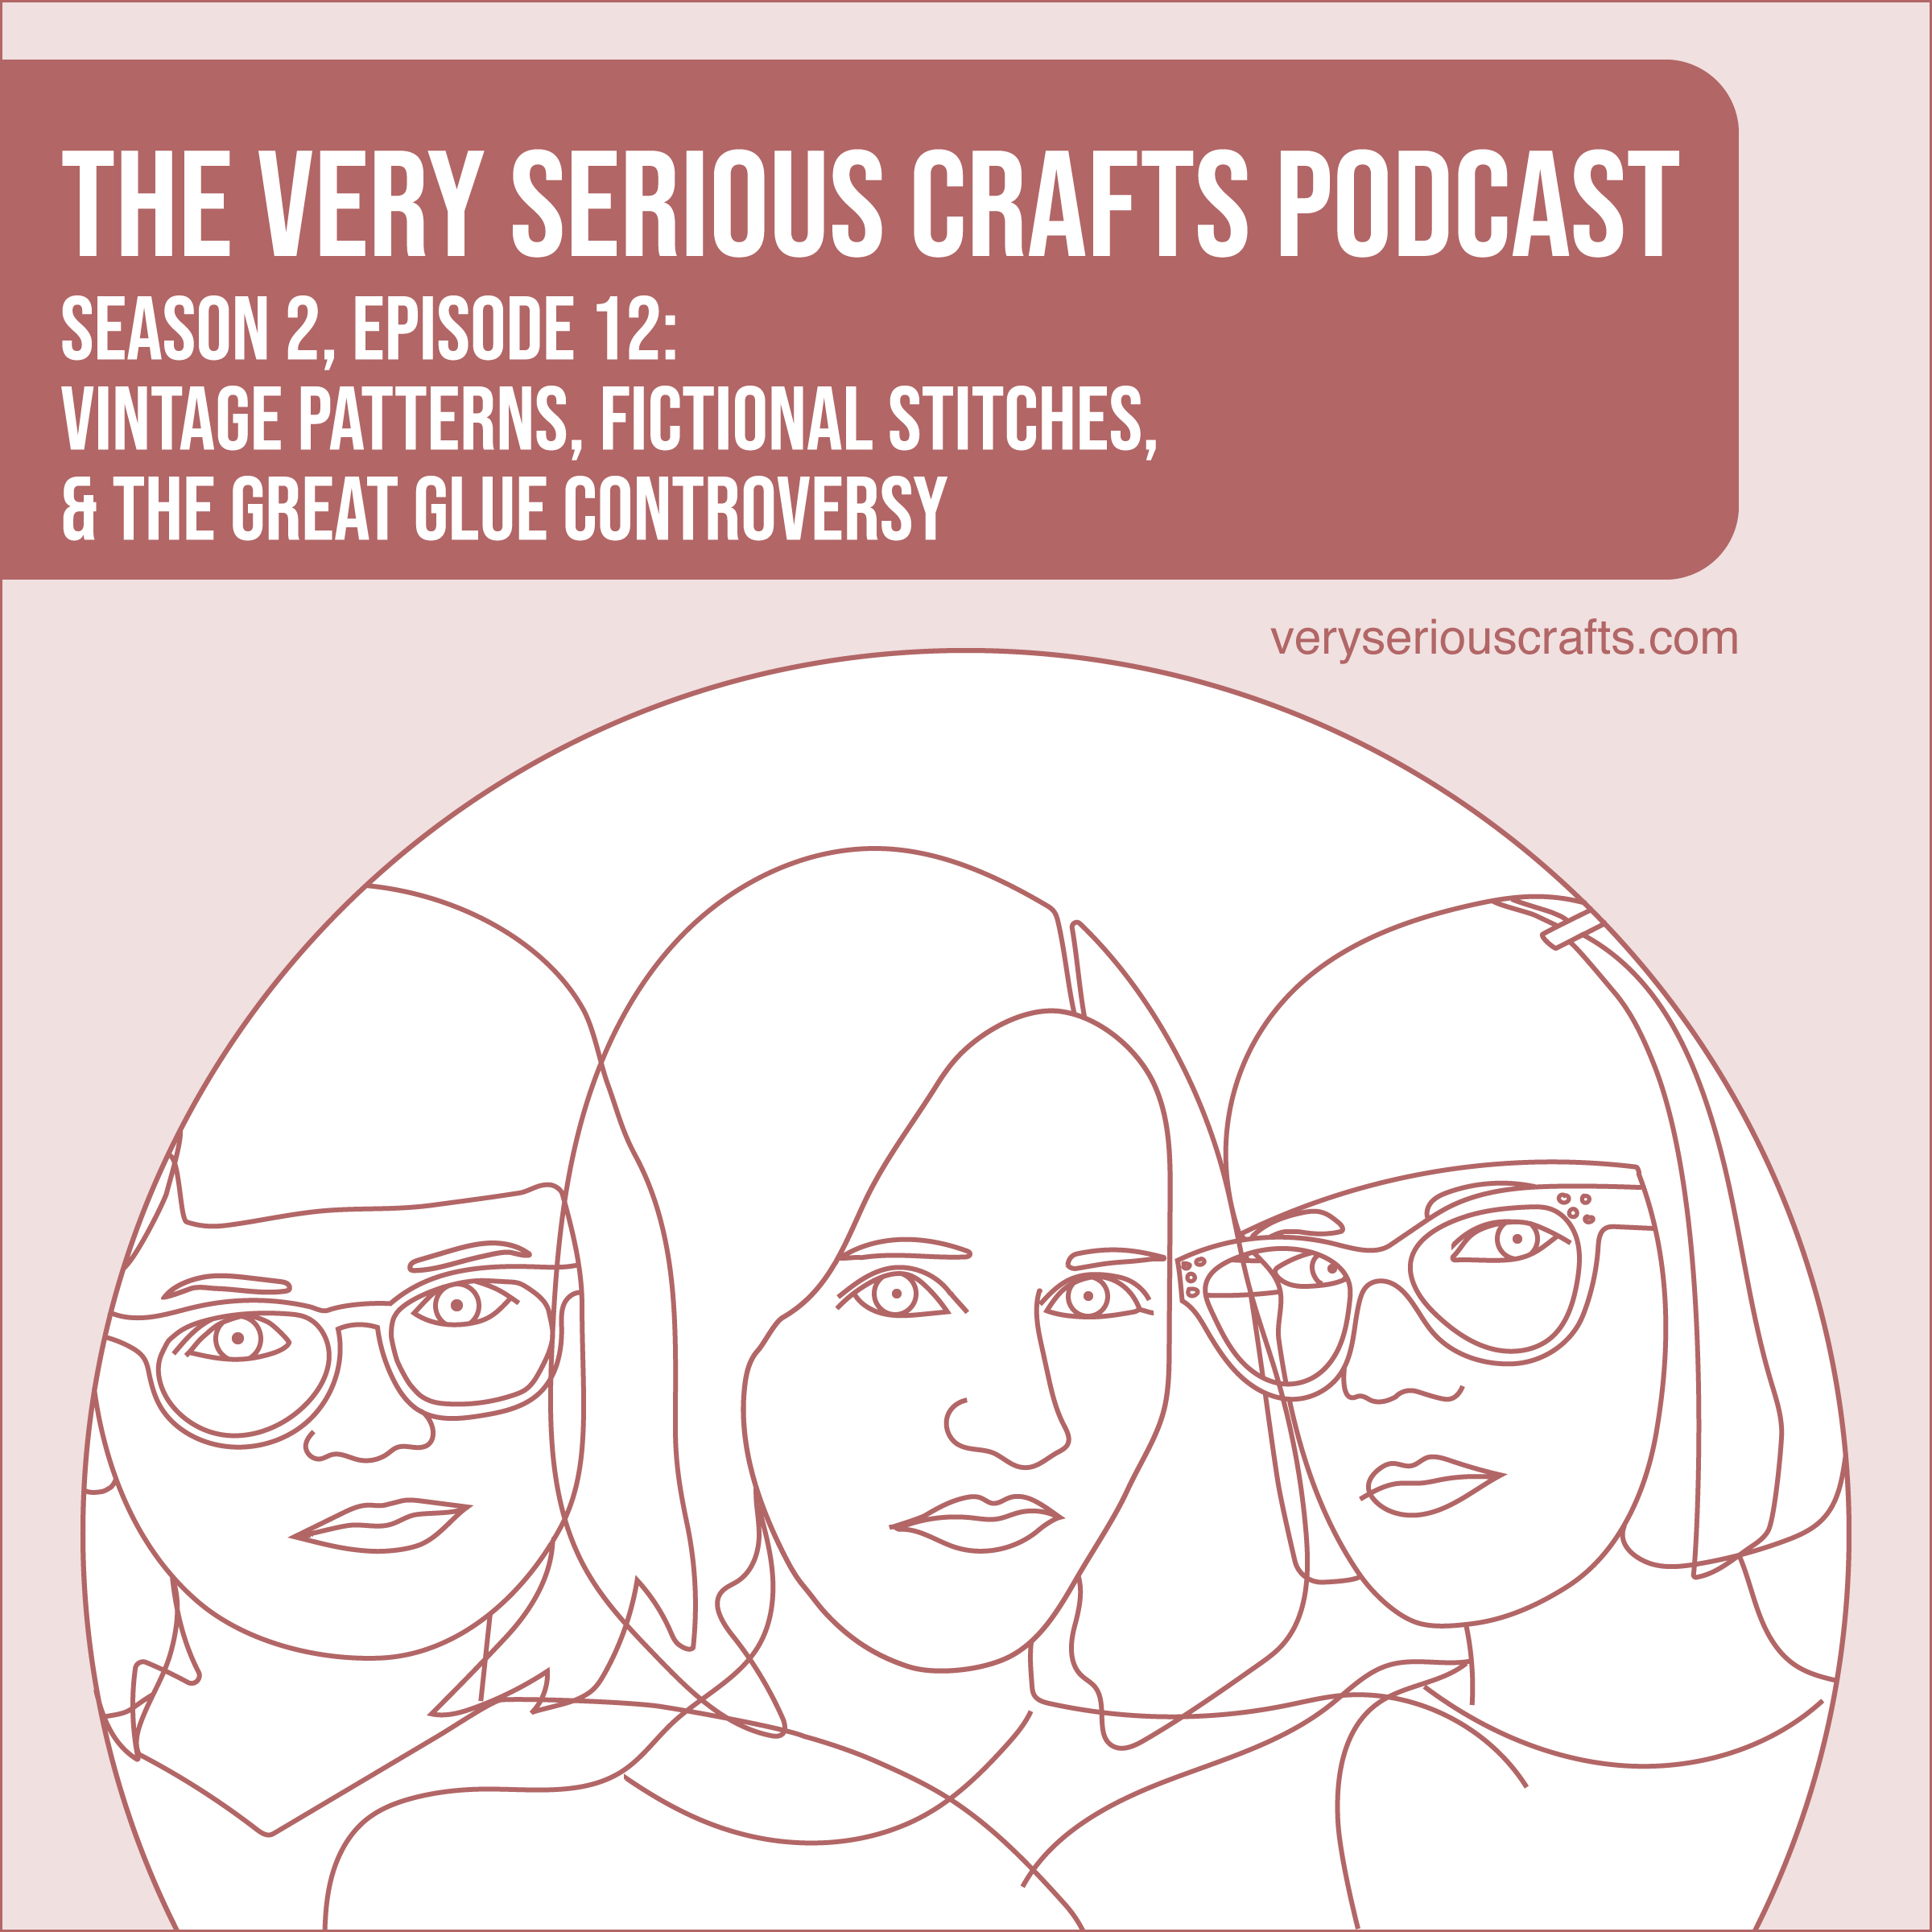 S2E12: Vintage Patterns, Fictional Stitches, and the Great Glue Controversy